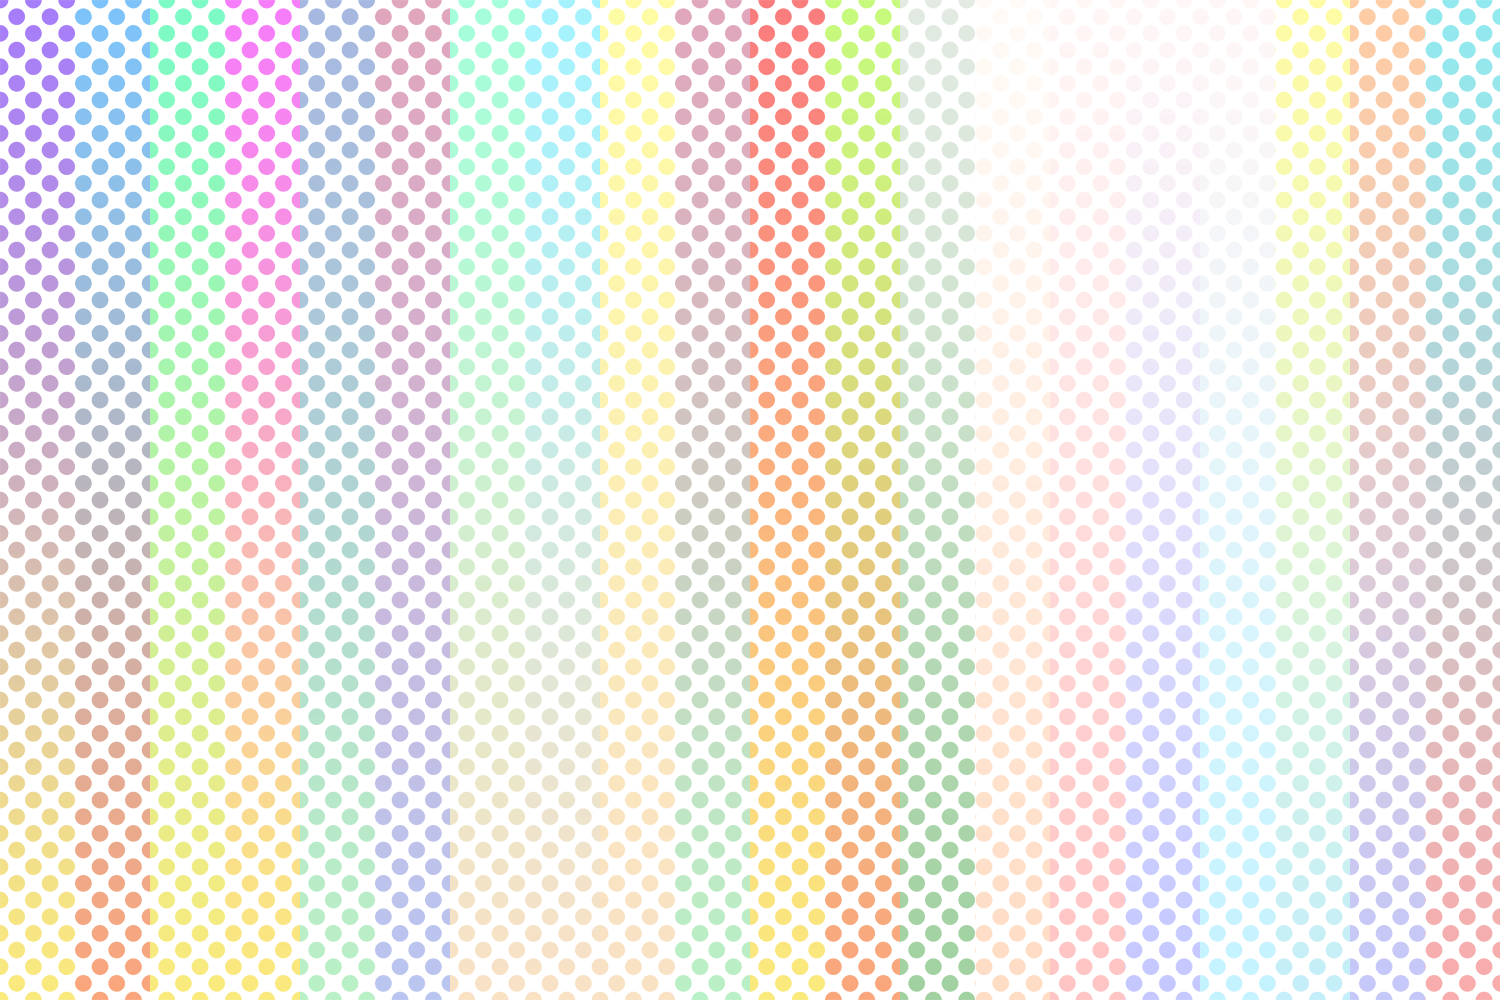 60 Gradient Dot Patterns example image 3